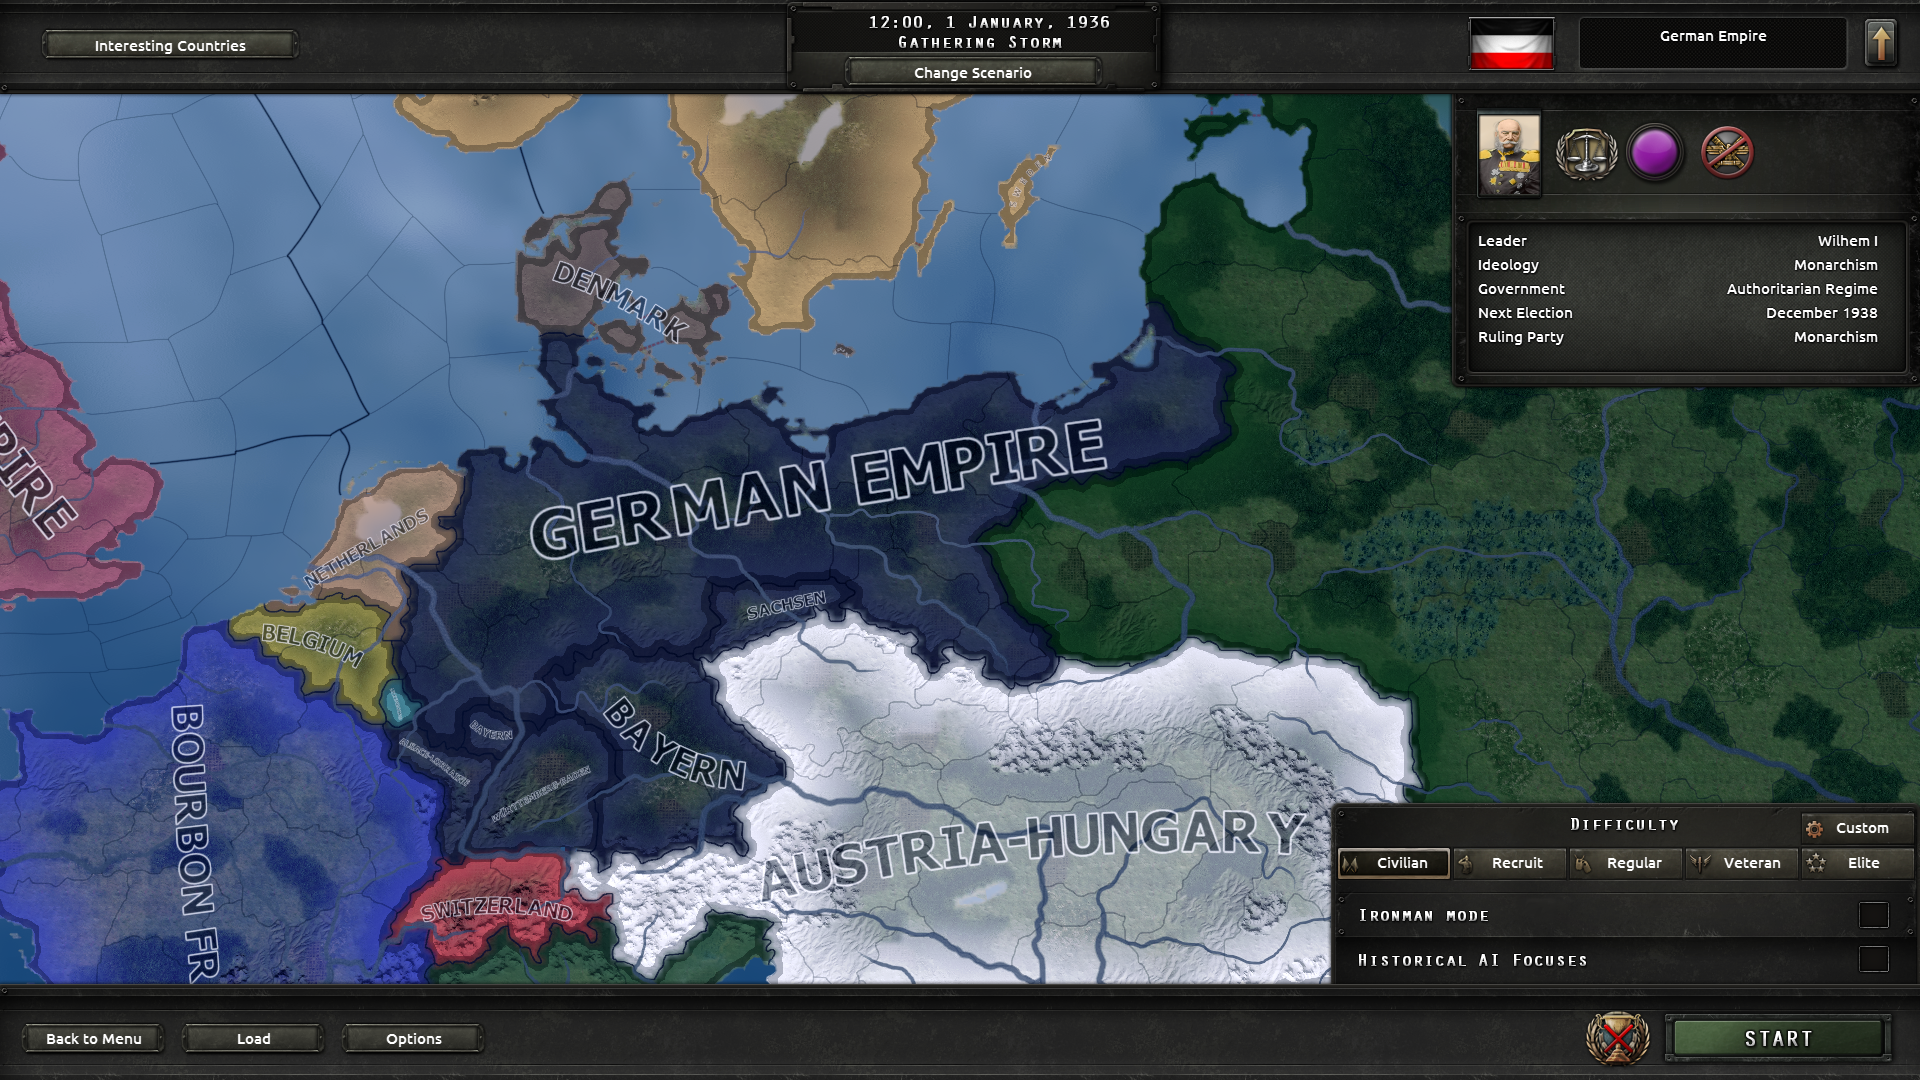 Rise of the Kaiserreich mod for Hearts of Iron IV - Mod DB